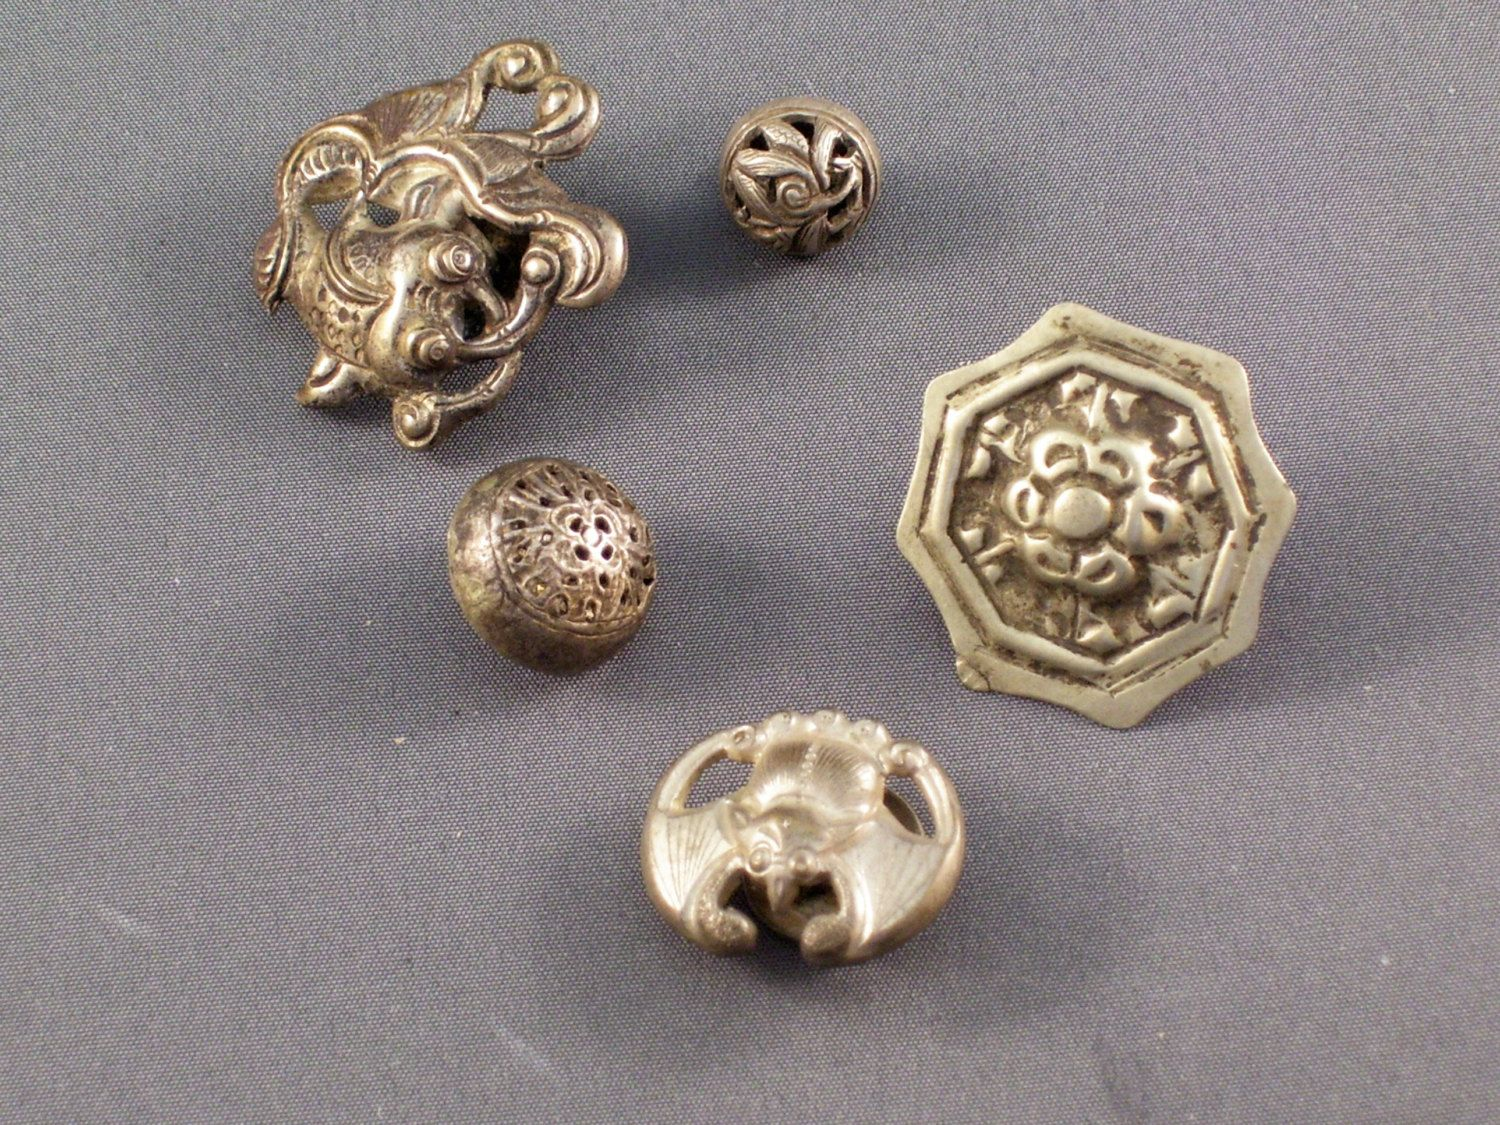 There are five assorted buttons in this group, all different motifs but featuring the same type of attachment on the back.  The largest button is